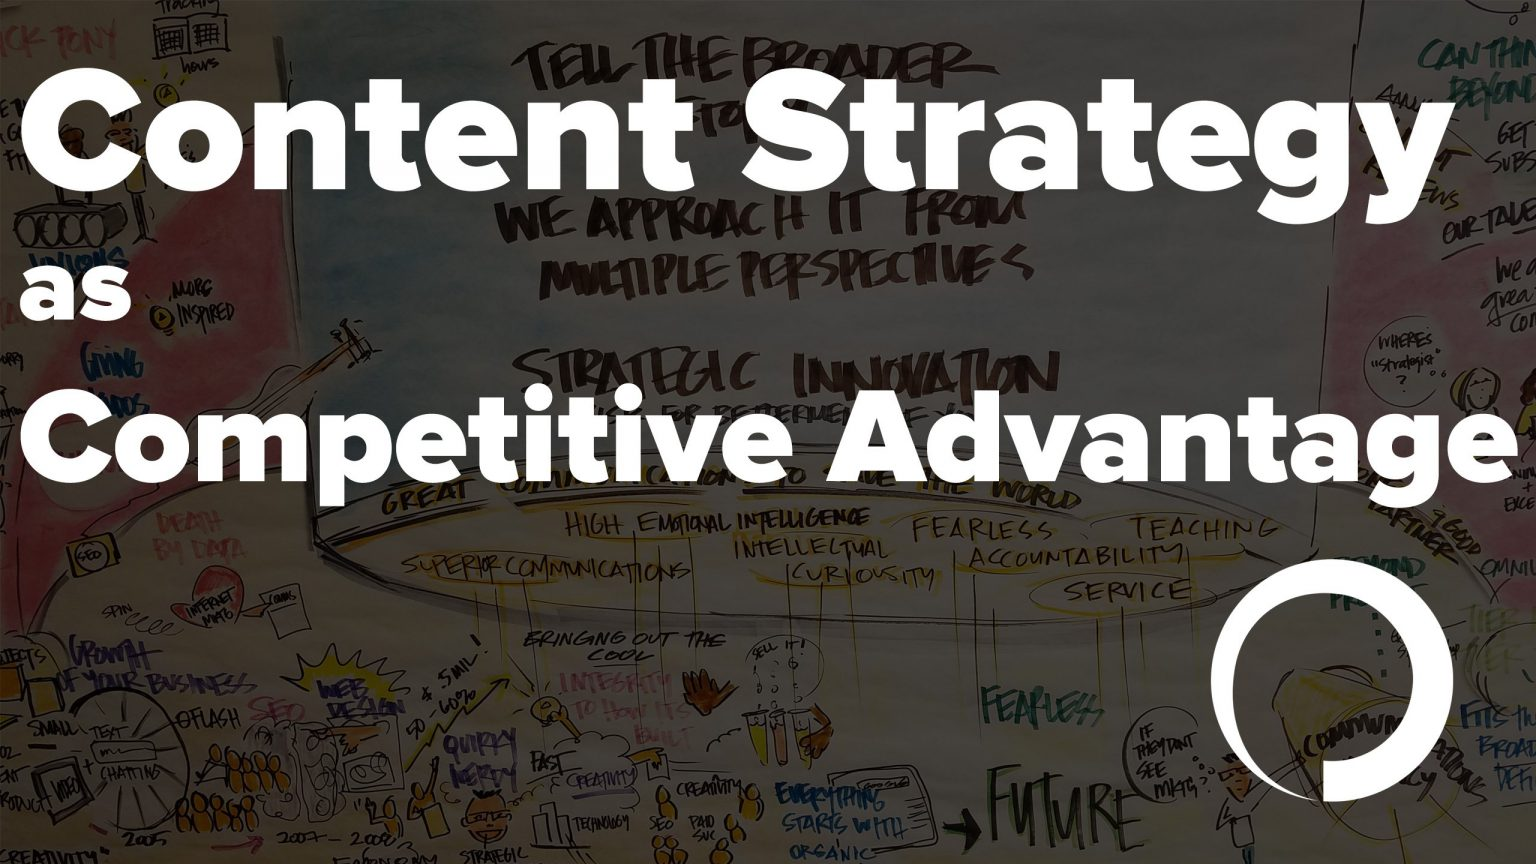 Content Strategy as Competitive Advantage